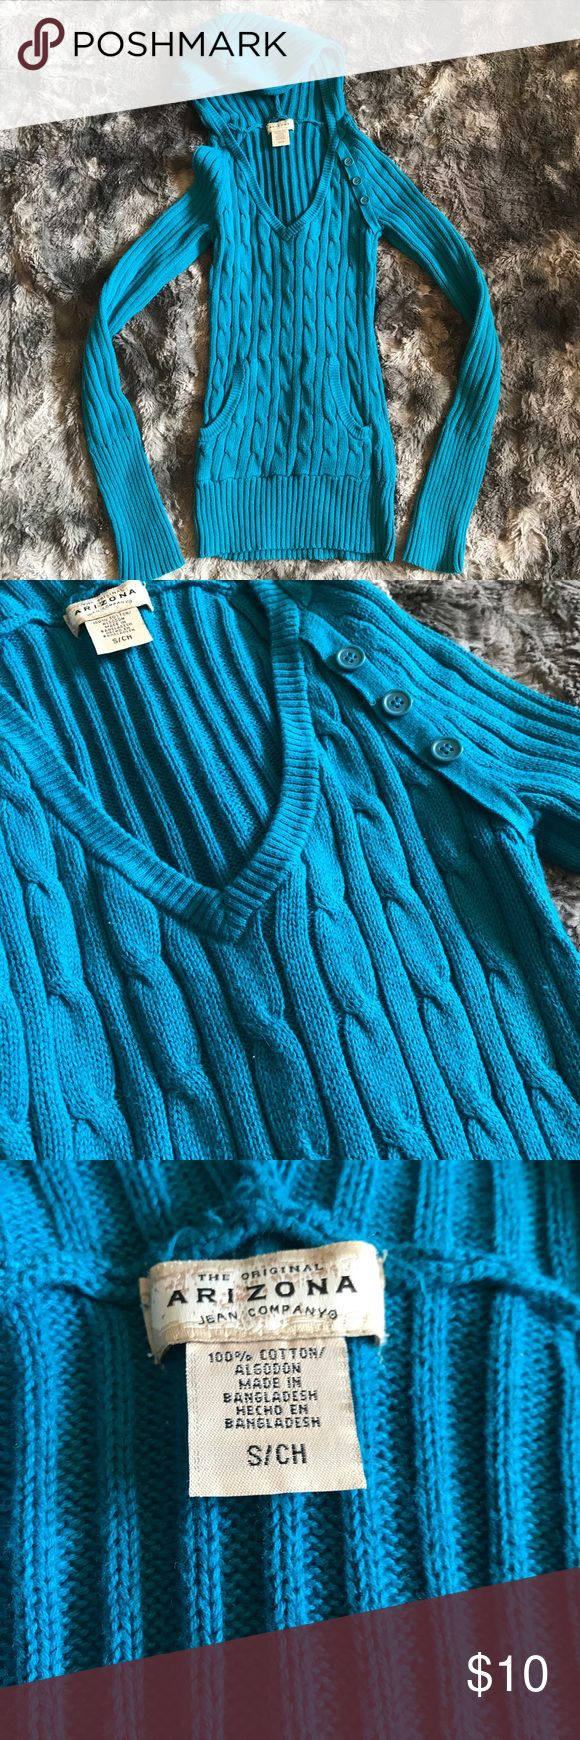 """Small Arizona hoodie sweater teal blue Women's or Juniors size small sweater by Arizona. It is a hoodie style, v-neck with a pocket and button accents. It will stretch out to fit. Never worn! Length-24"""" armpit to armpit-14"""" Arizona Jean Company Sweaters V-Necks"""